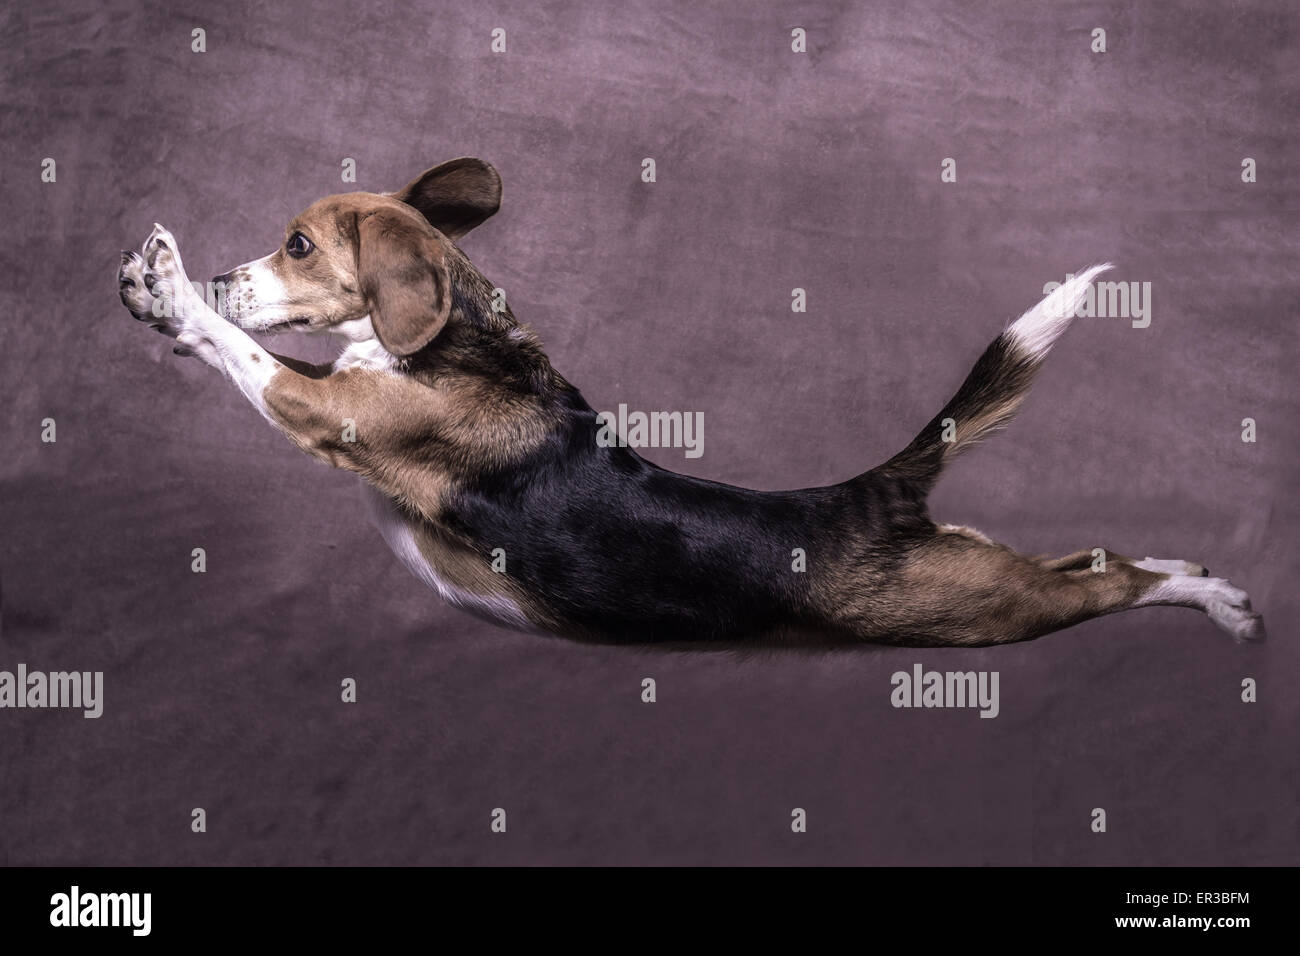 Side view of a dog leaping - Stock Image